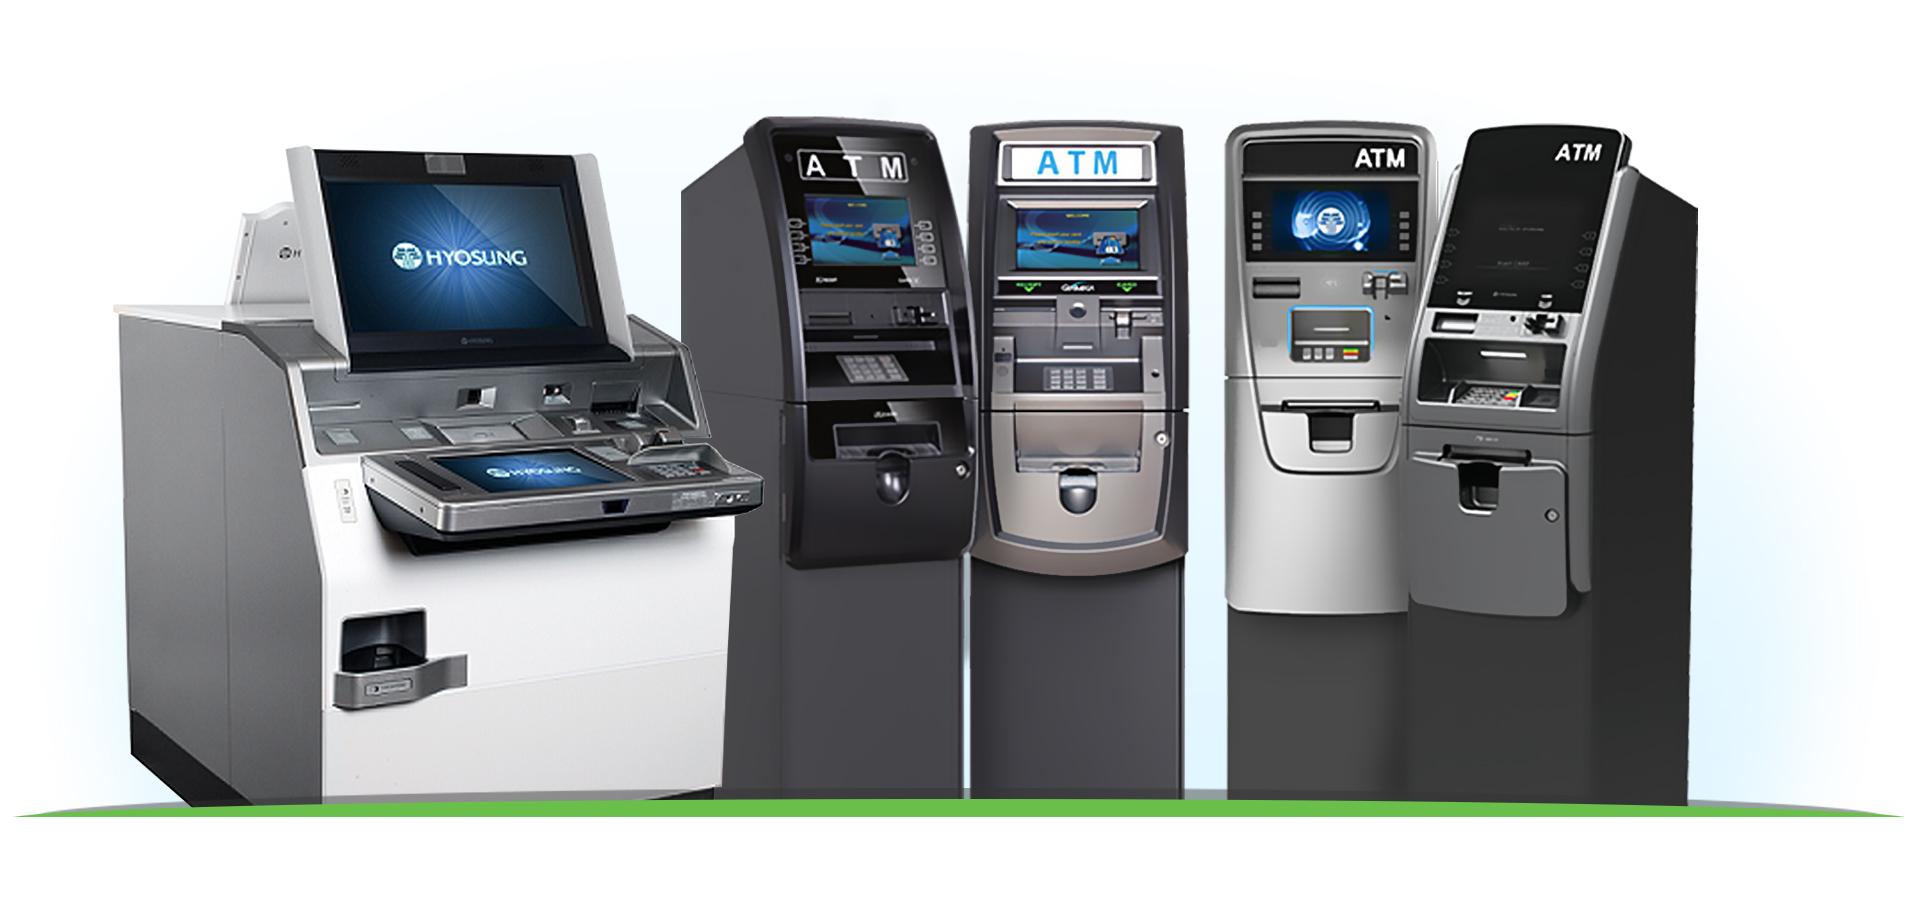 ATMs for lobby and branch transformation. Hyosung MX8800, HALO-II, Force ATMs, and Genmega ATMs